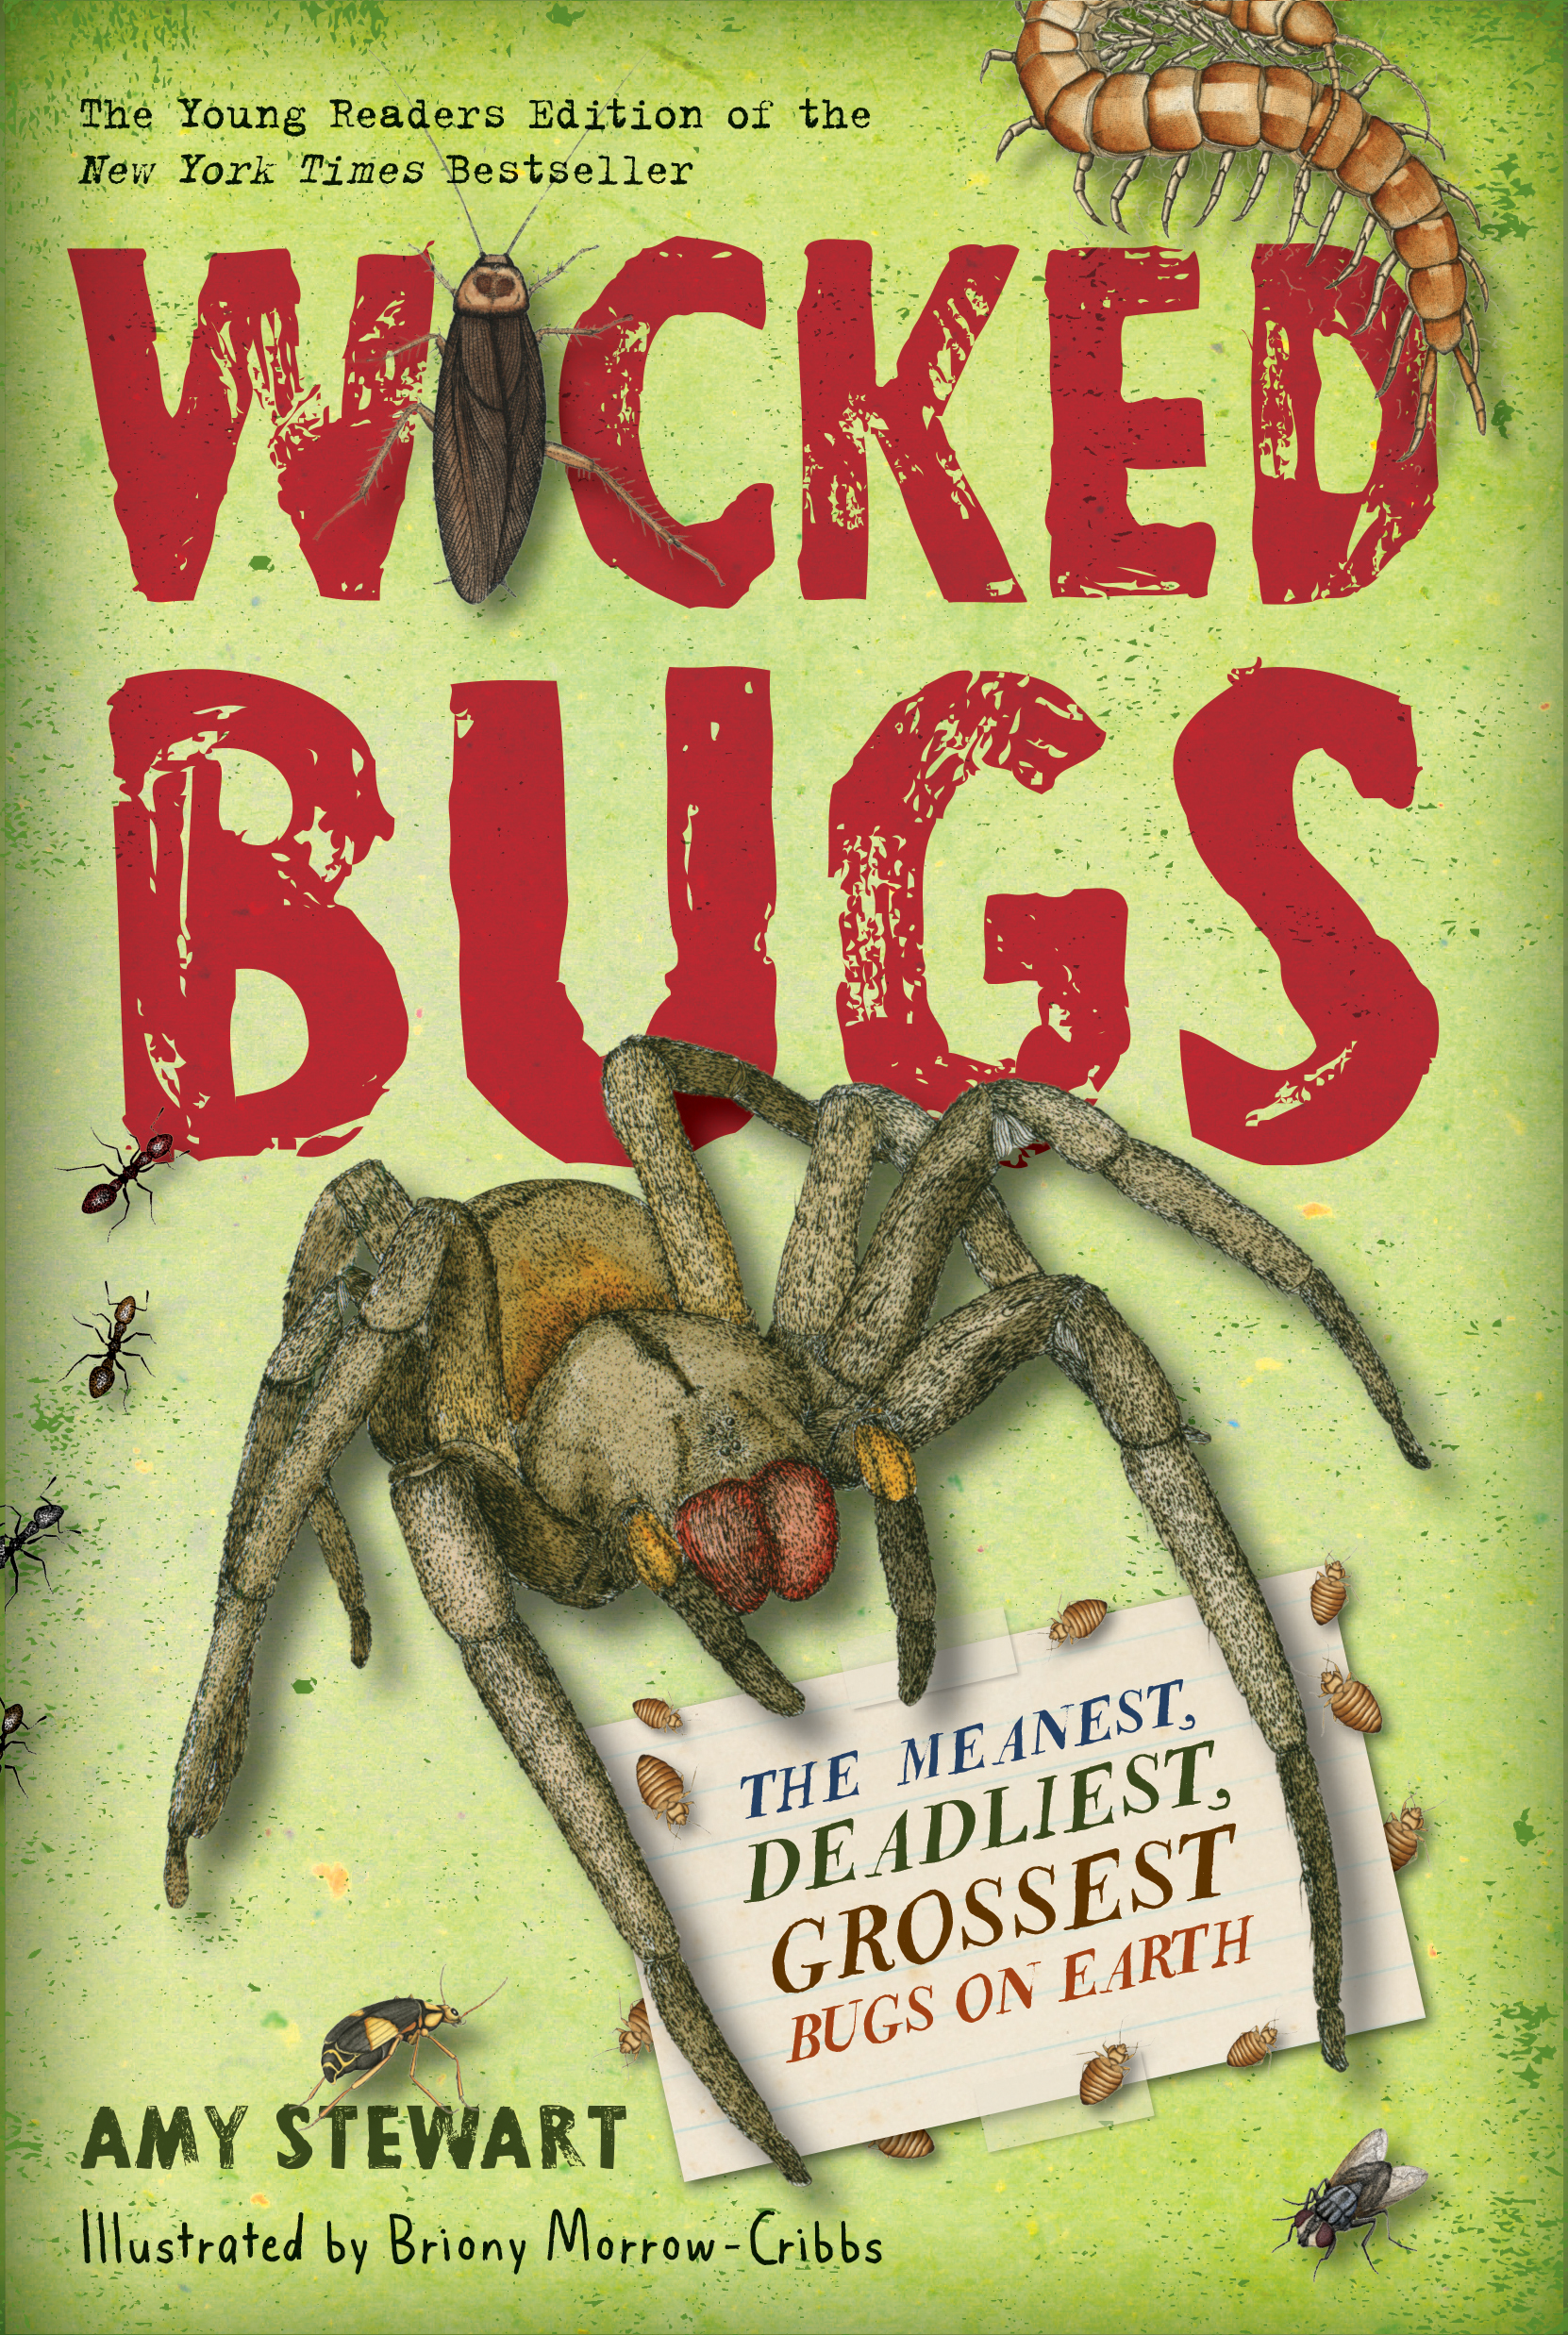 Wicked Bugs The Meanest, Deadliest, Grossest Bugs on Earth